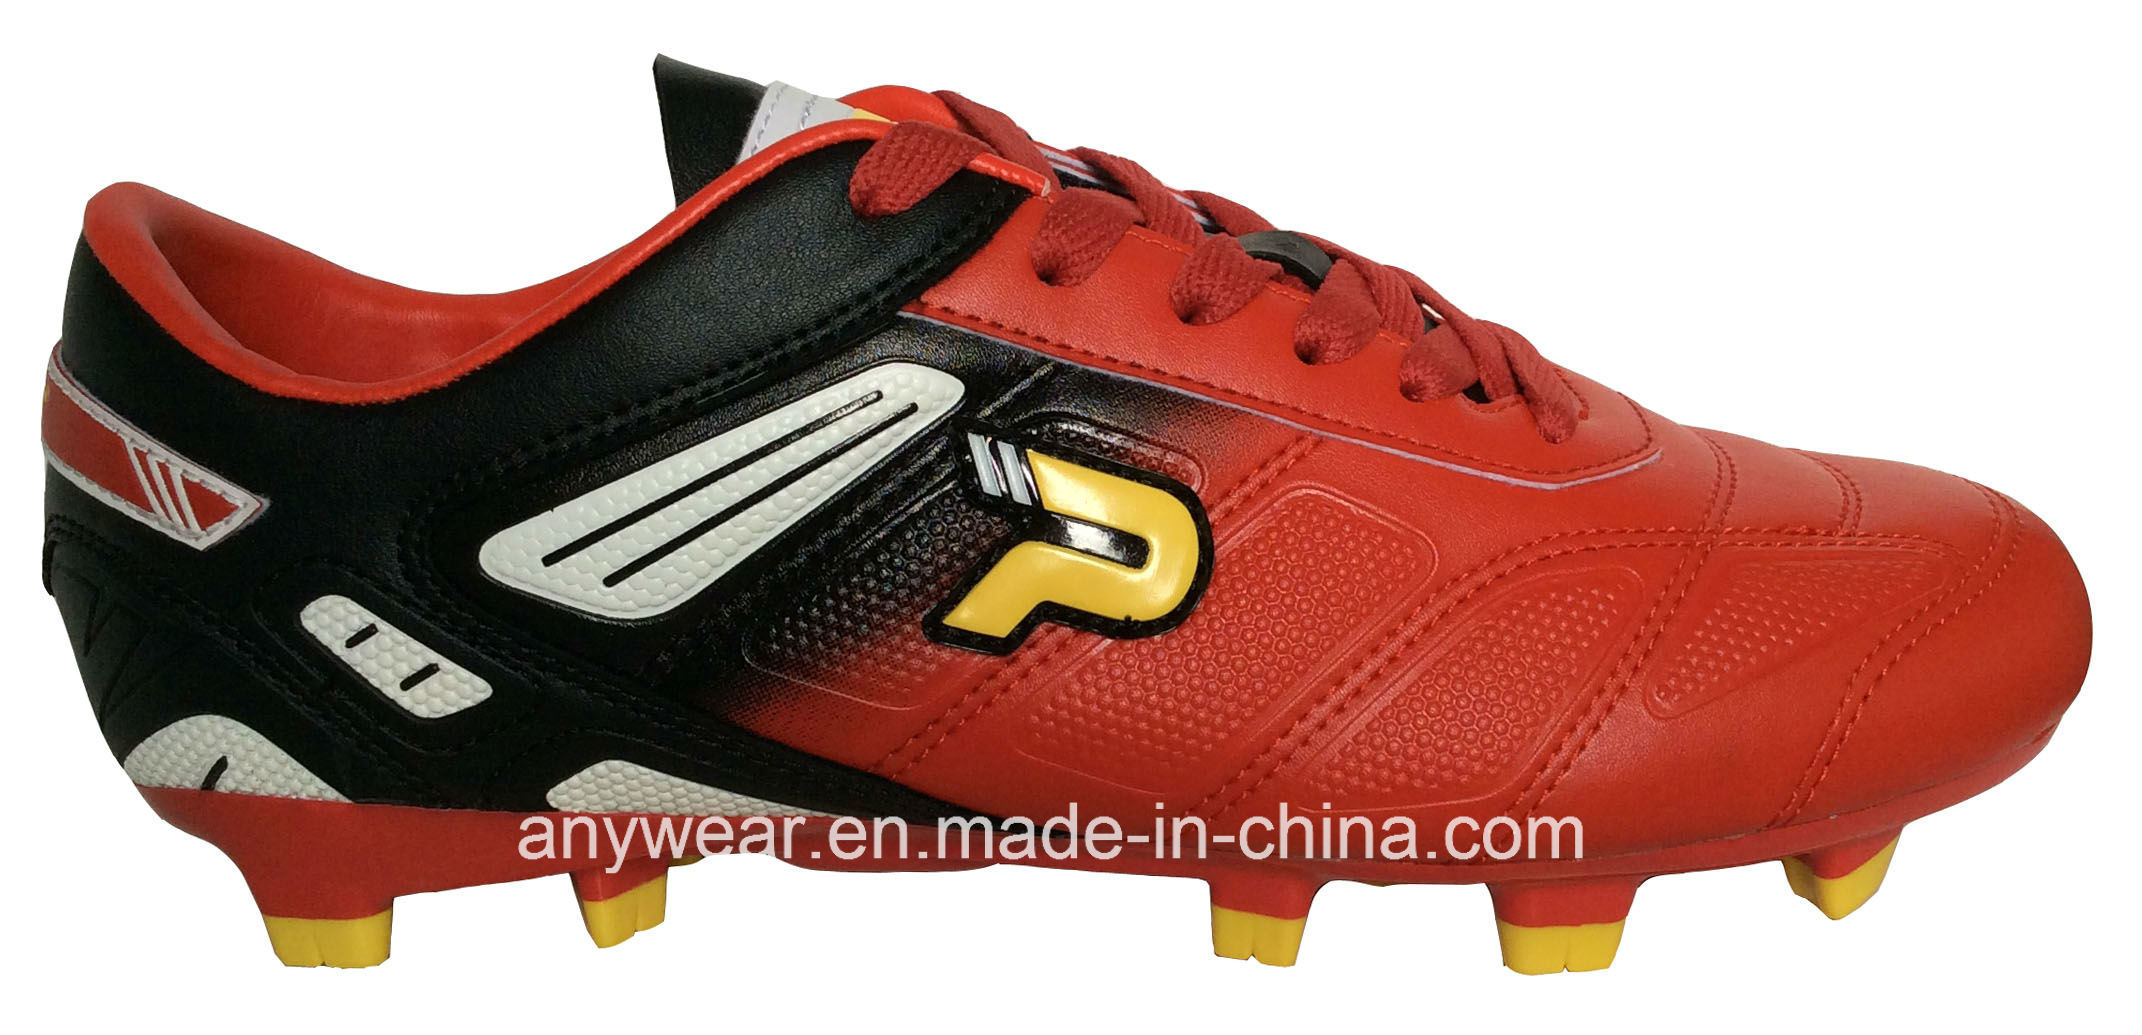 China Men Outdoor Soccer Boots Football Shoes (815-2348) pictures & photos